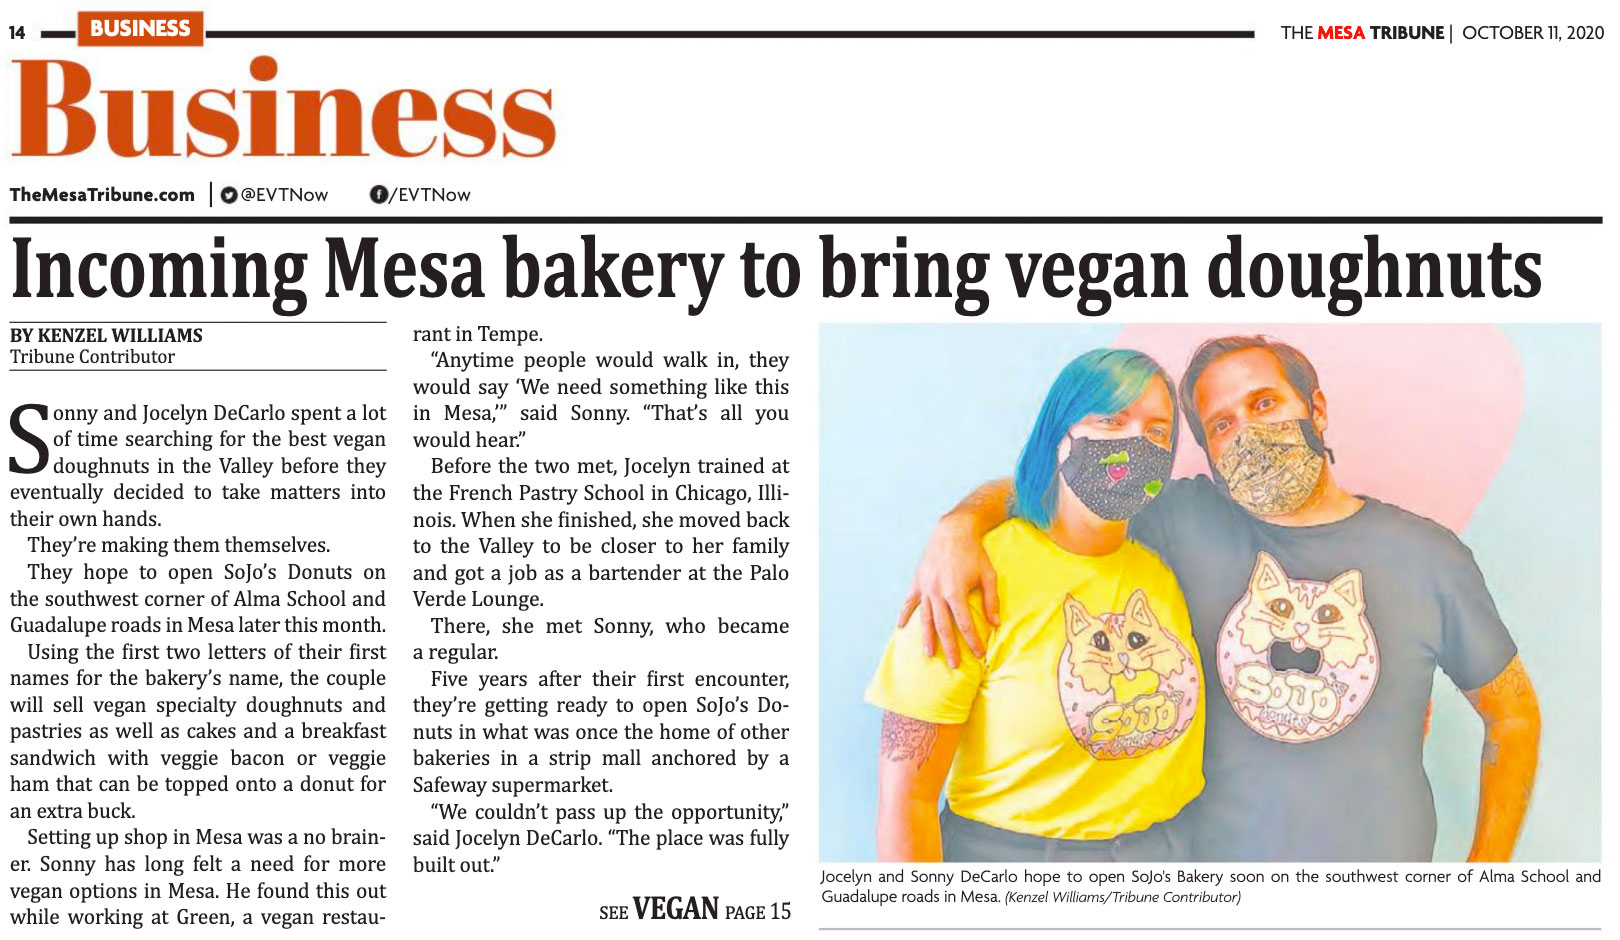 SoJo's Featured in The Mesa Tribune!